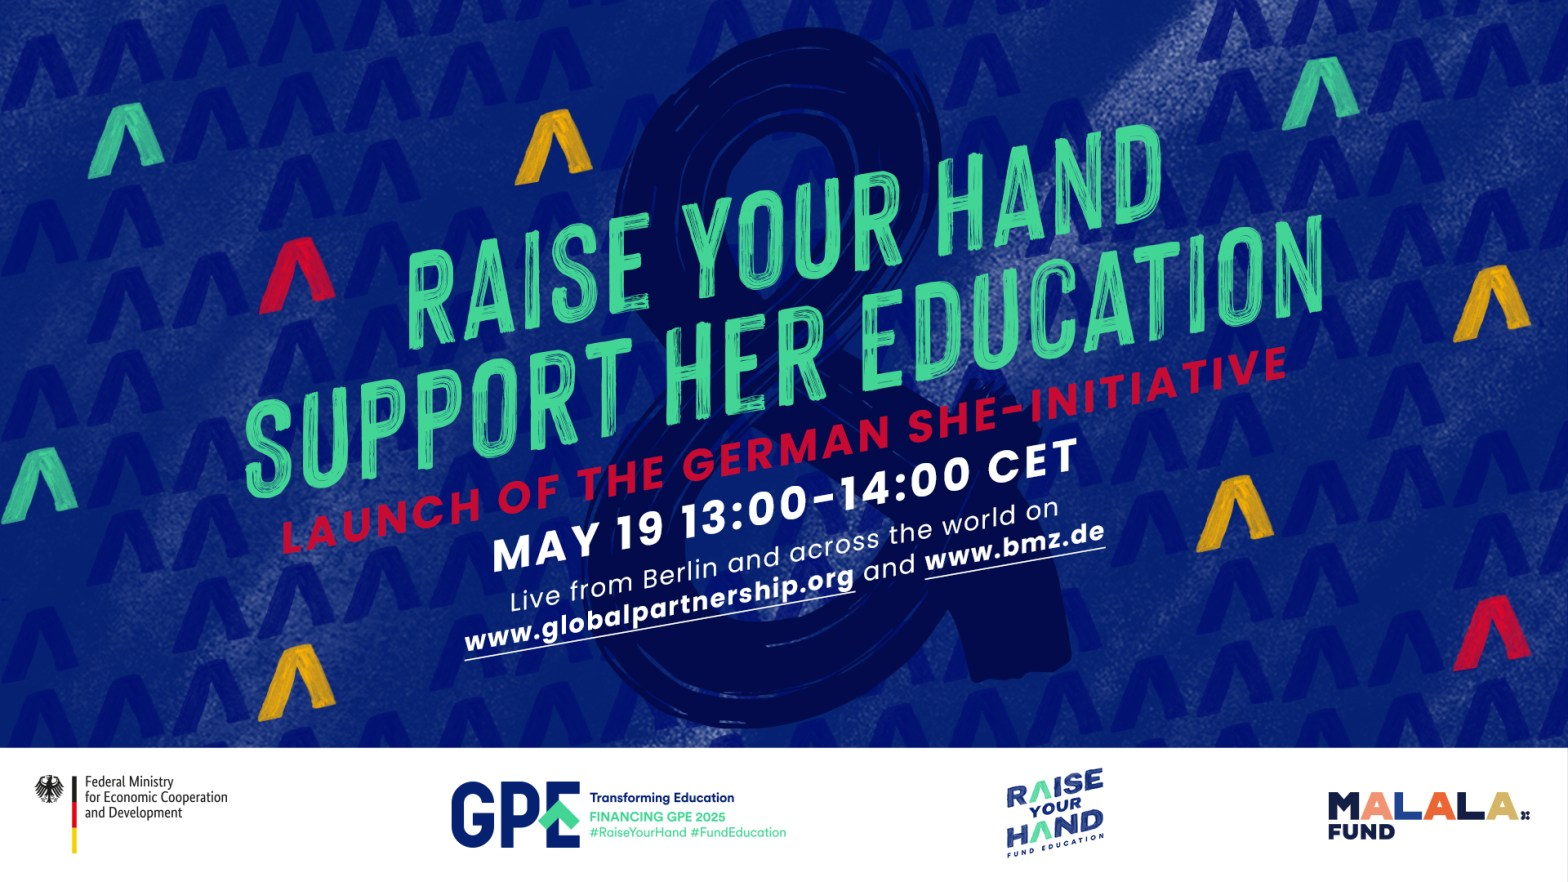 Raise Your Hand & Support Her Education